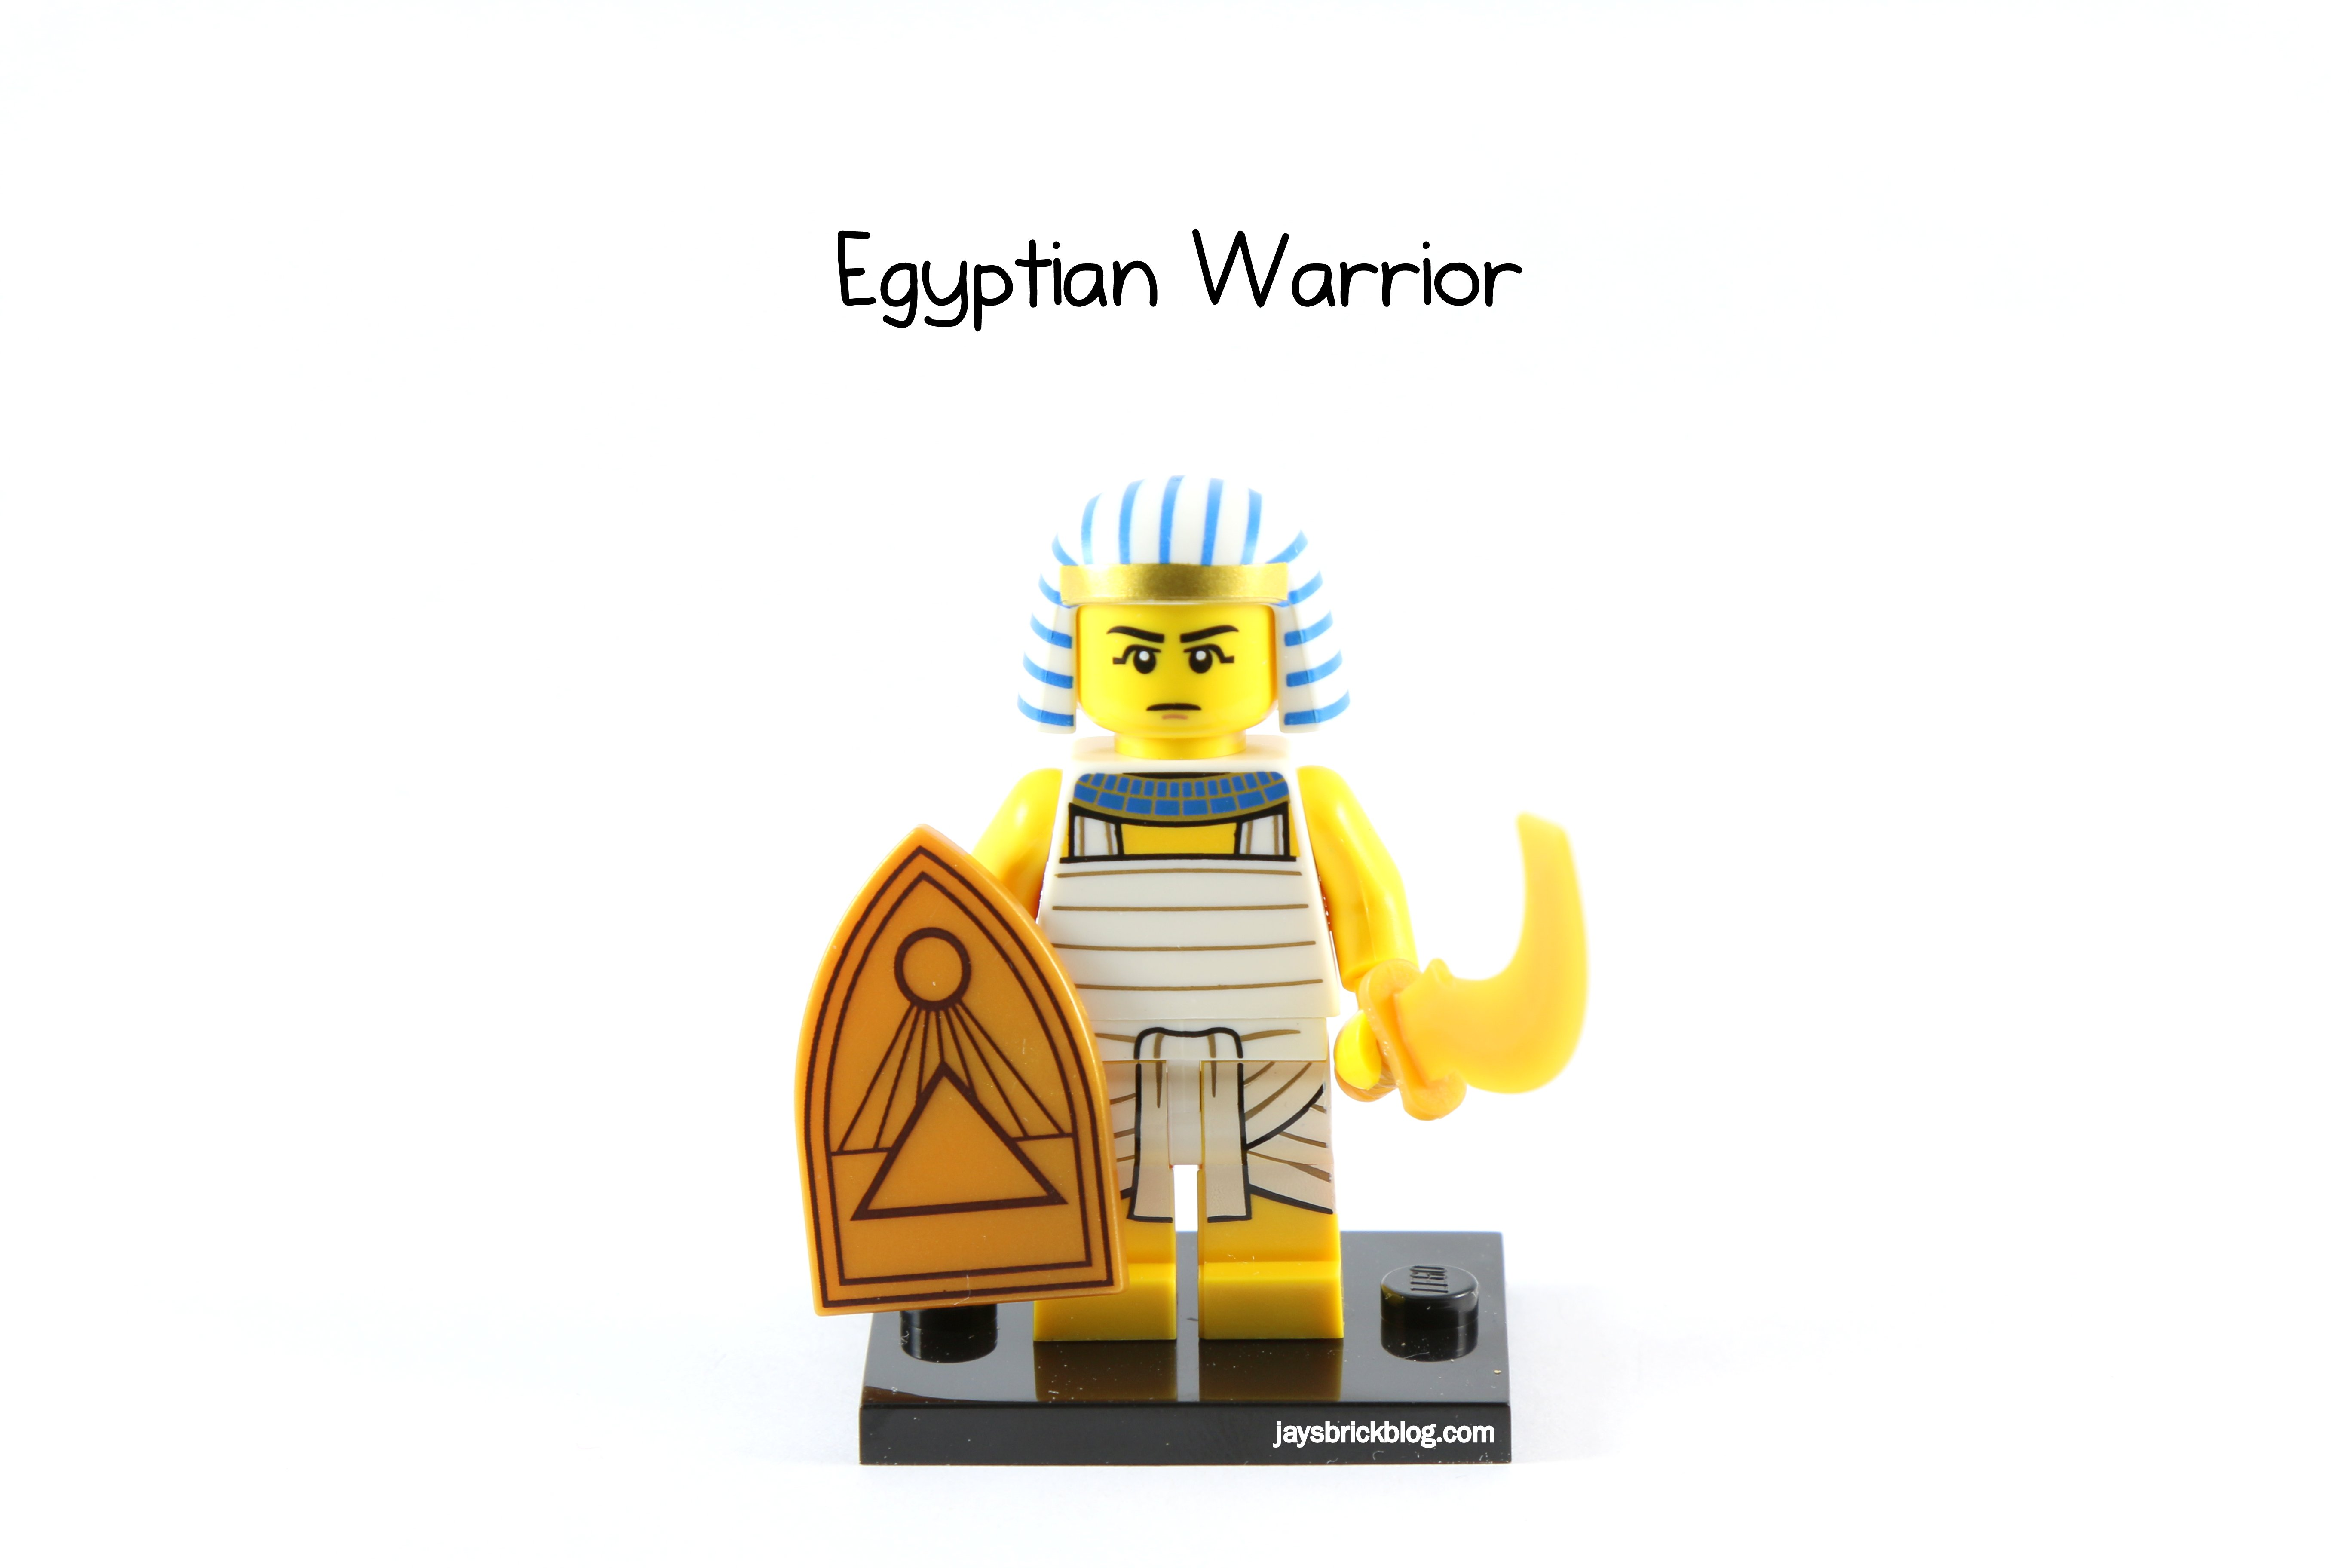 New Genuine LEGO Egyptian Warrior Minifig with Sickle Sword Series 13 71008